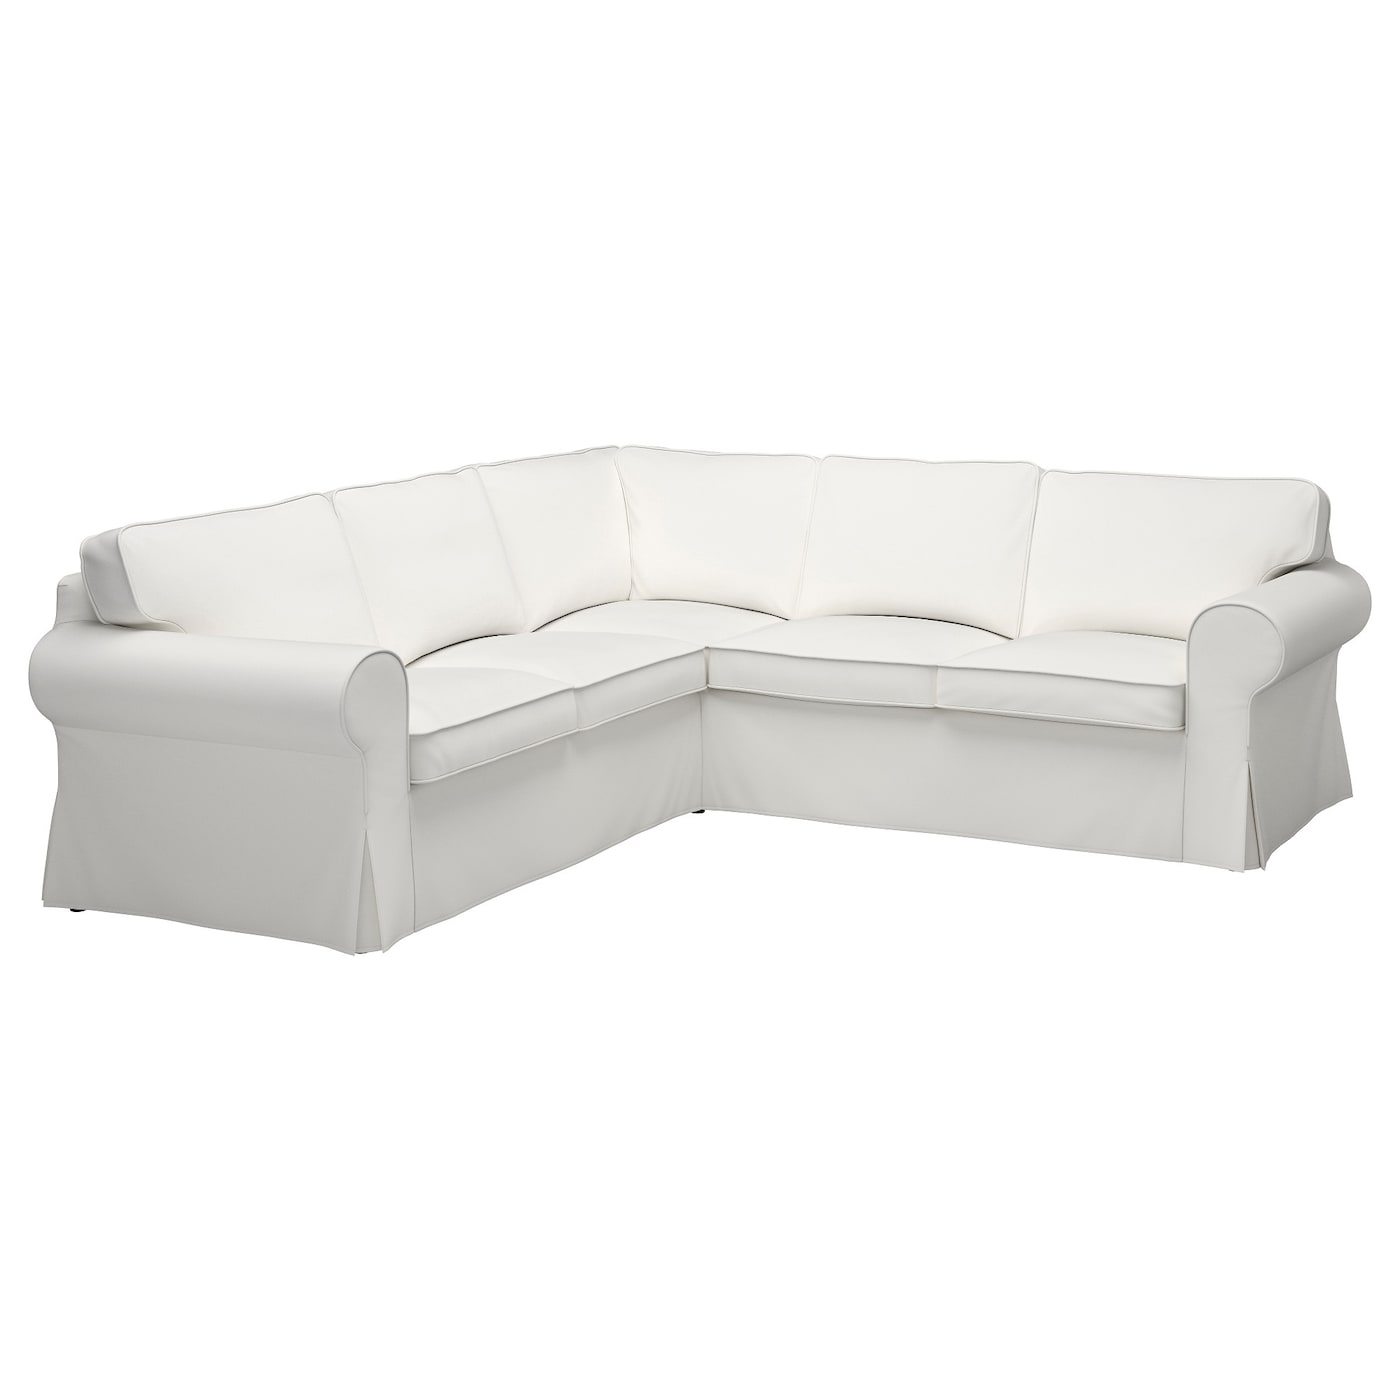 ektorp corner sofa 4 seat vittaryd white ikea. Black Bedroom Furniture Sets. Home Design Ideas